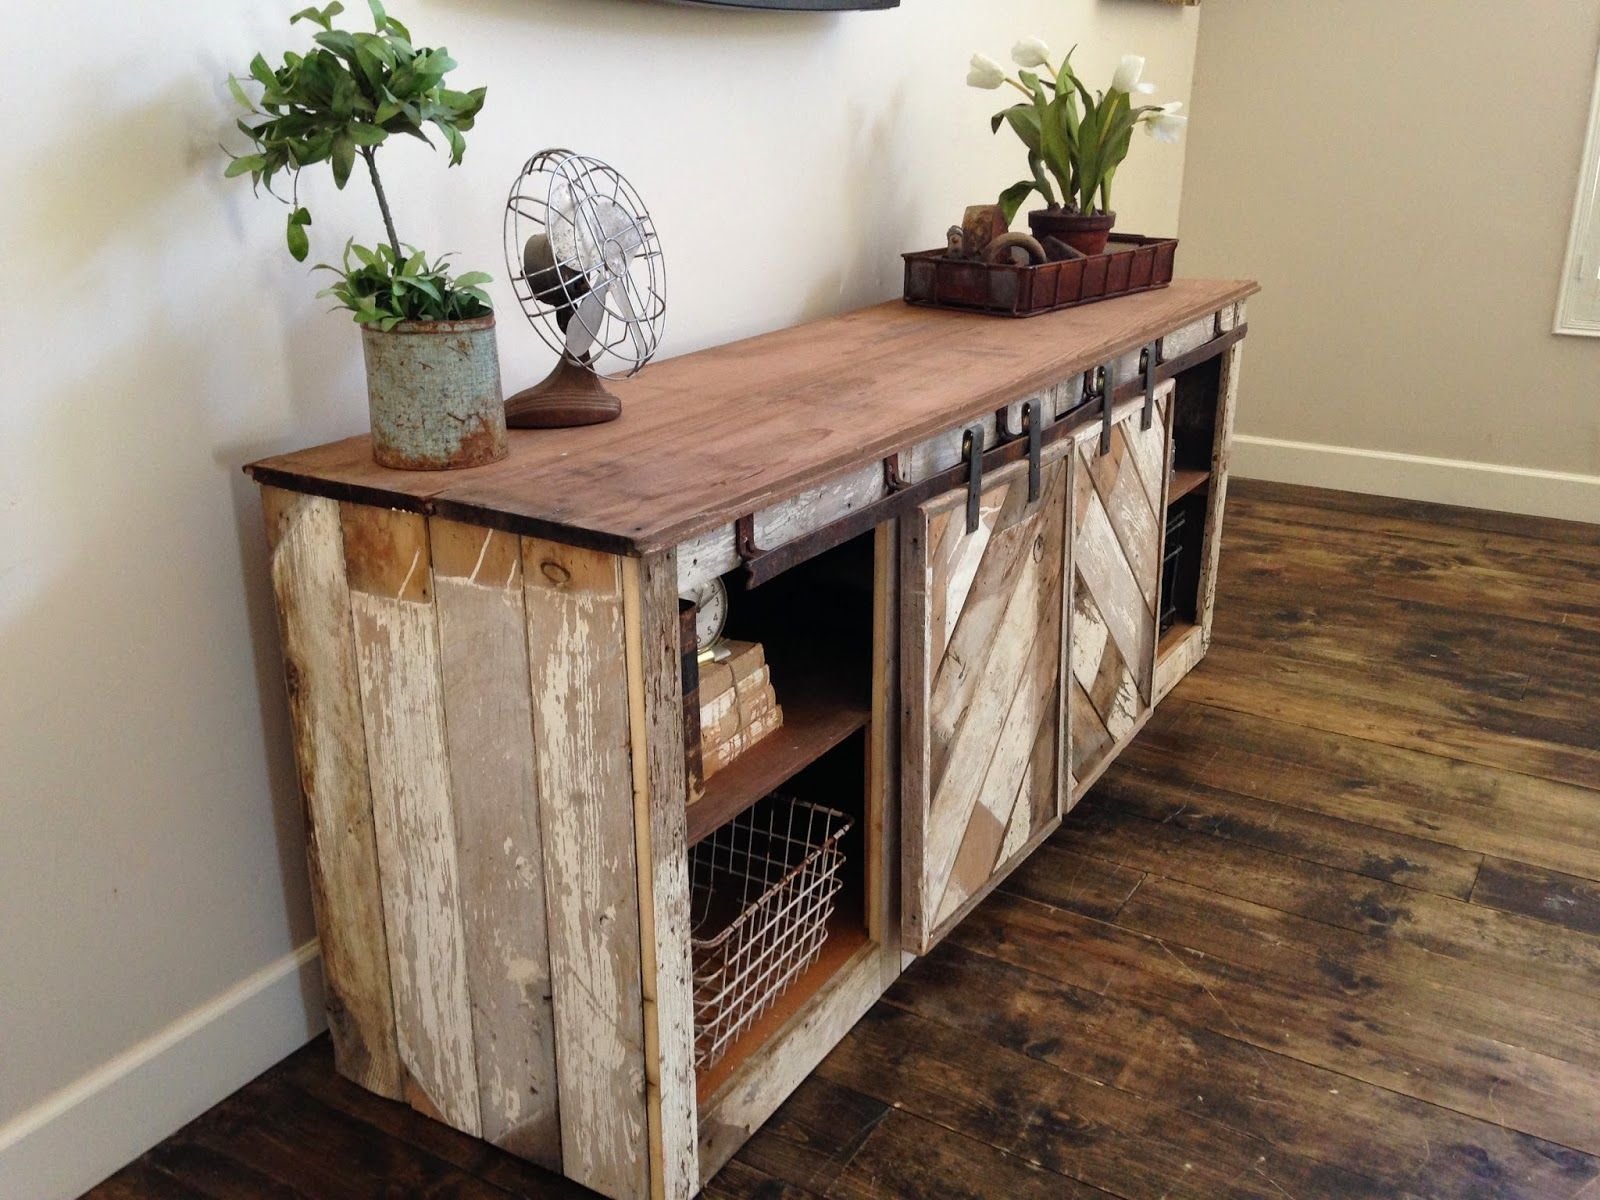 Build sliding cabinet doors - Rustic Distressed Barn Door Sliding Console Furniture Could Be A Different Option For A Console Table